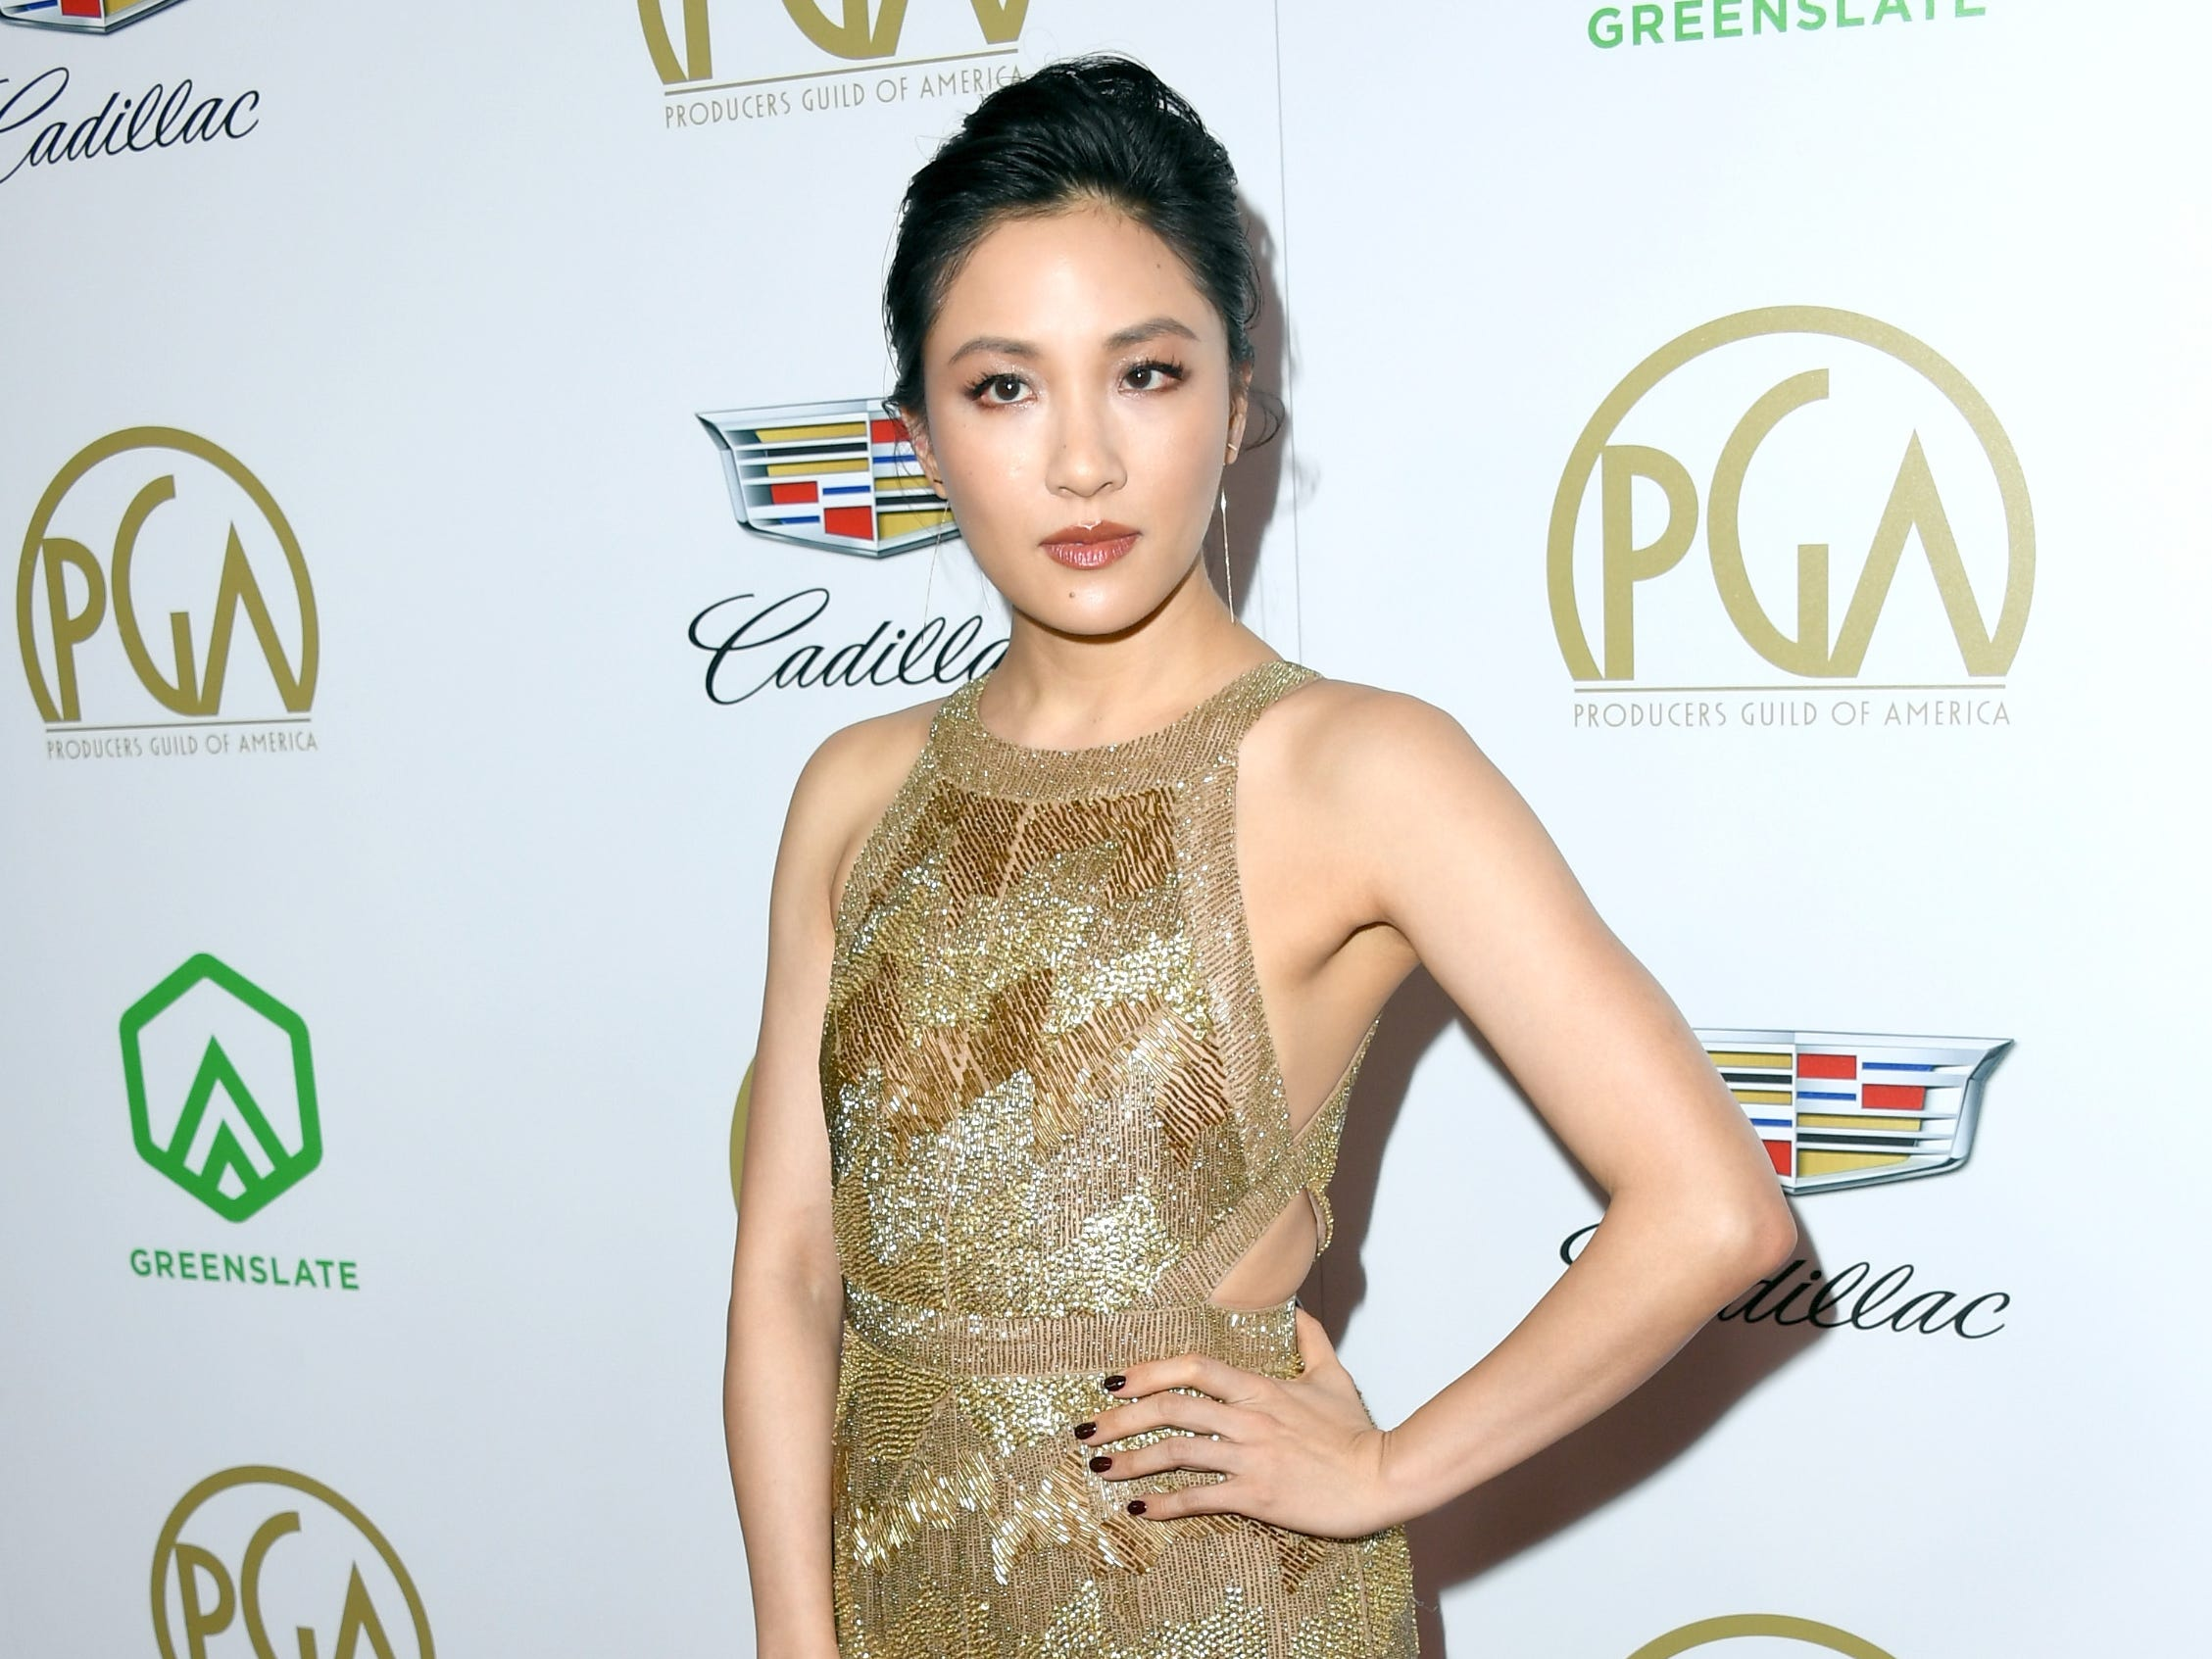 BEVERLY HILLS, CA - JANUARY 19:  Constance Wu attends the 30th annual Producers Guild Awards at The Beverly Hilton Hotel on January 19, 2019 in Beverly Hills, California.  (Photo by Jon Kopaloff/FilmMagic) ORG XMIT: 775277375 ORIG FILE ID: 1085408940